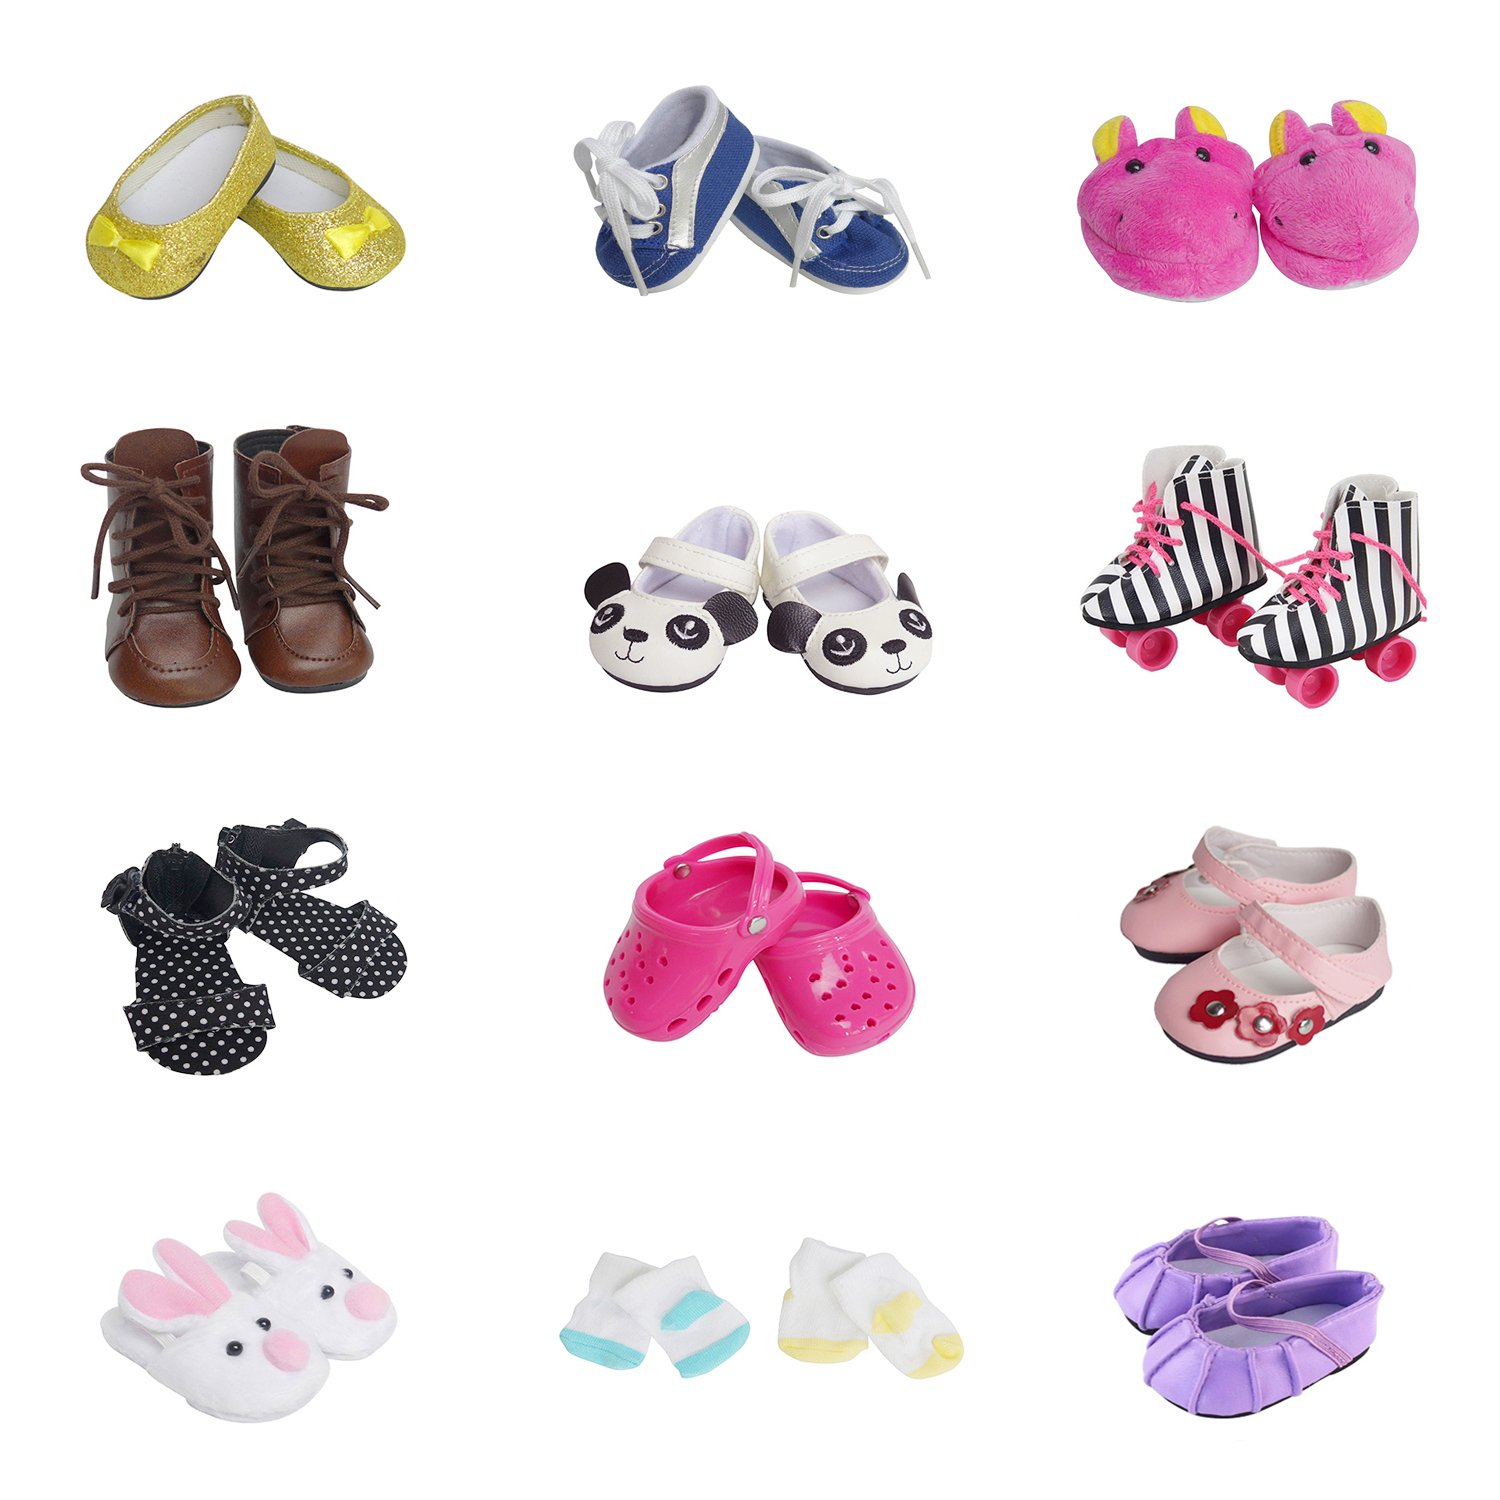 5 Pairs of Shoes + 2 Pairs of Socks Fits for 18 inch Doll Shoes American Dolls Accessories 100% Get Panda Shoes and Boots or Skates Festar